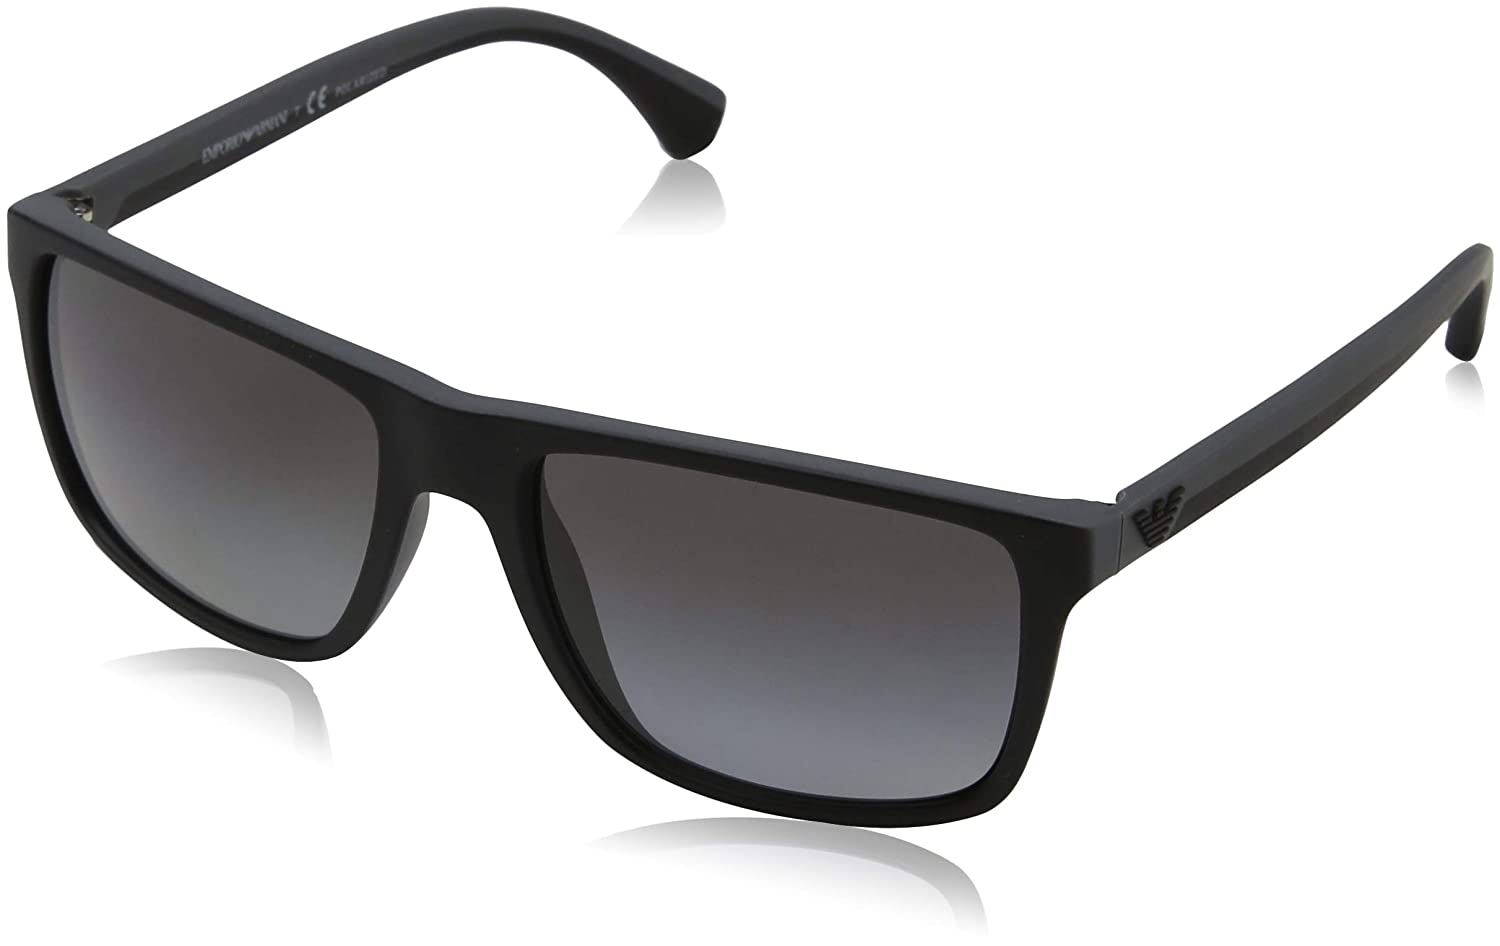 e81da7473bbf9 Emporio Armani EA 4033 Men s Sunglasses at Amazon Women s Clothing store